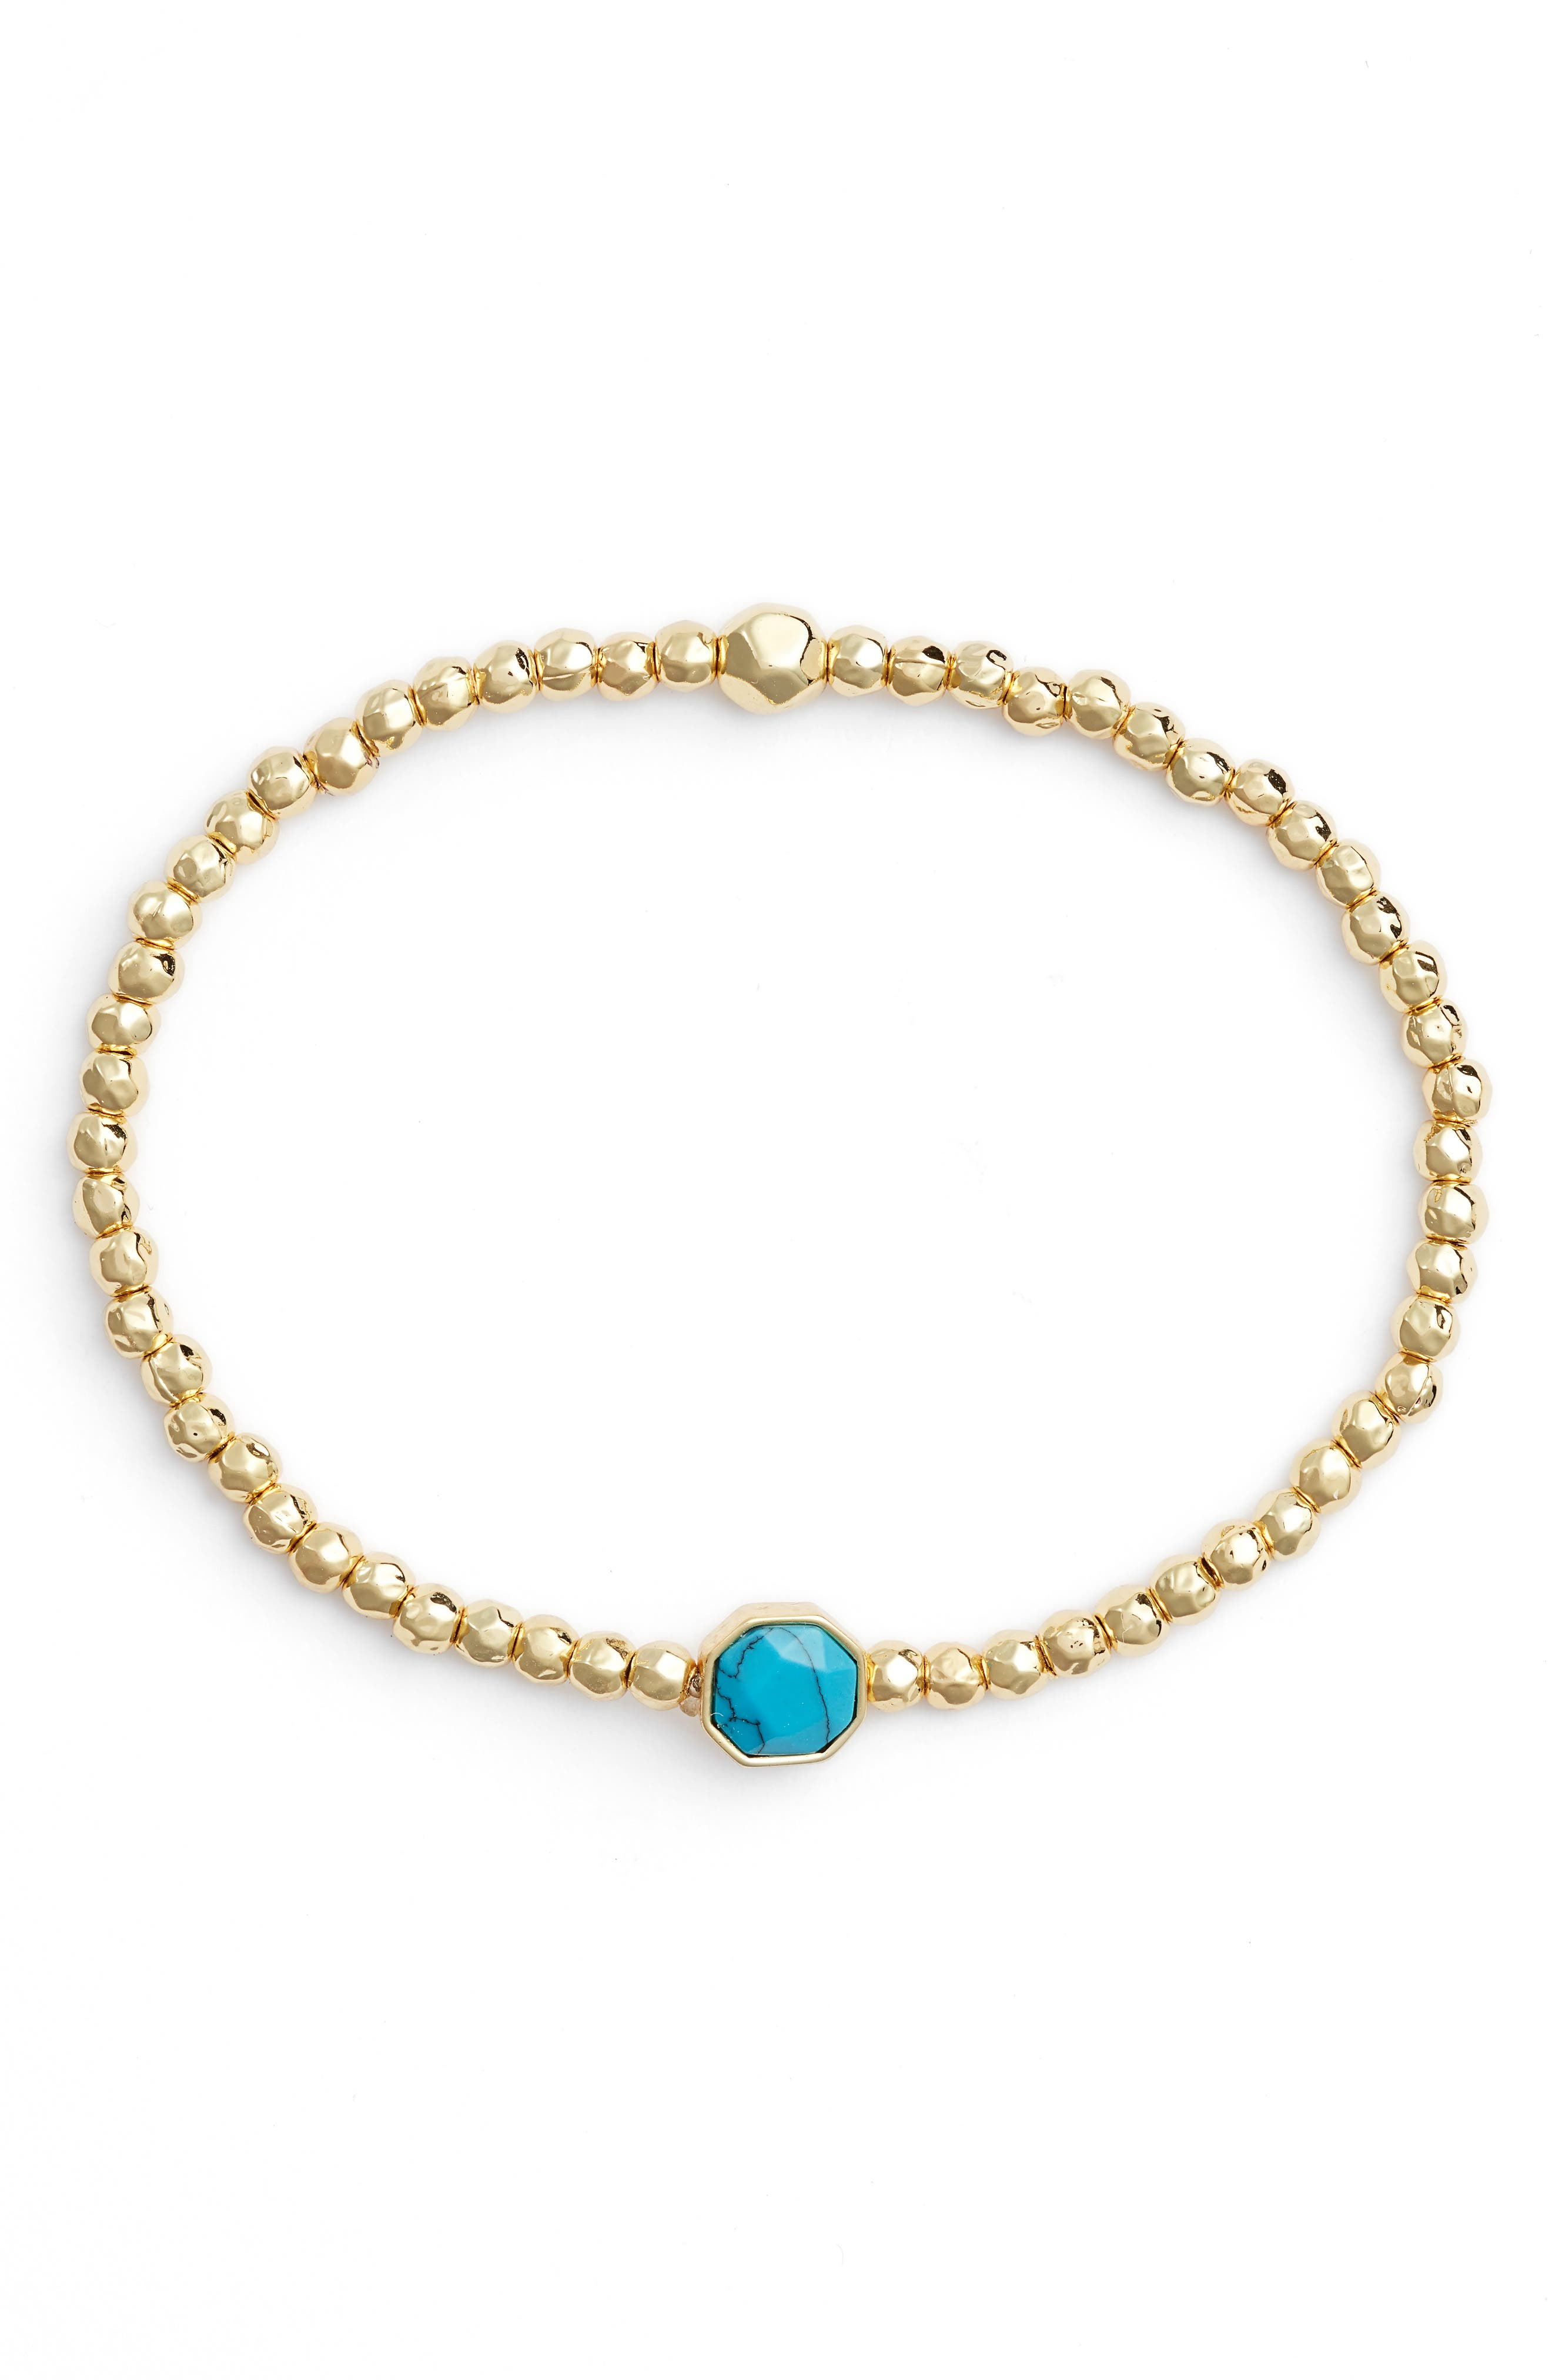 GORJANA, Power Gemstone Beaded Bracelet, Main thumbnail 1, color, TURQUOISE/ GOLD